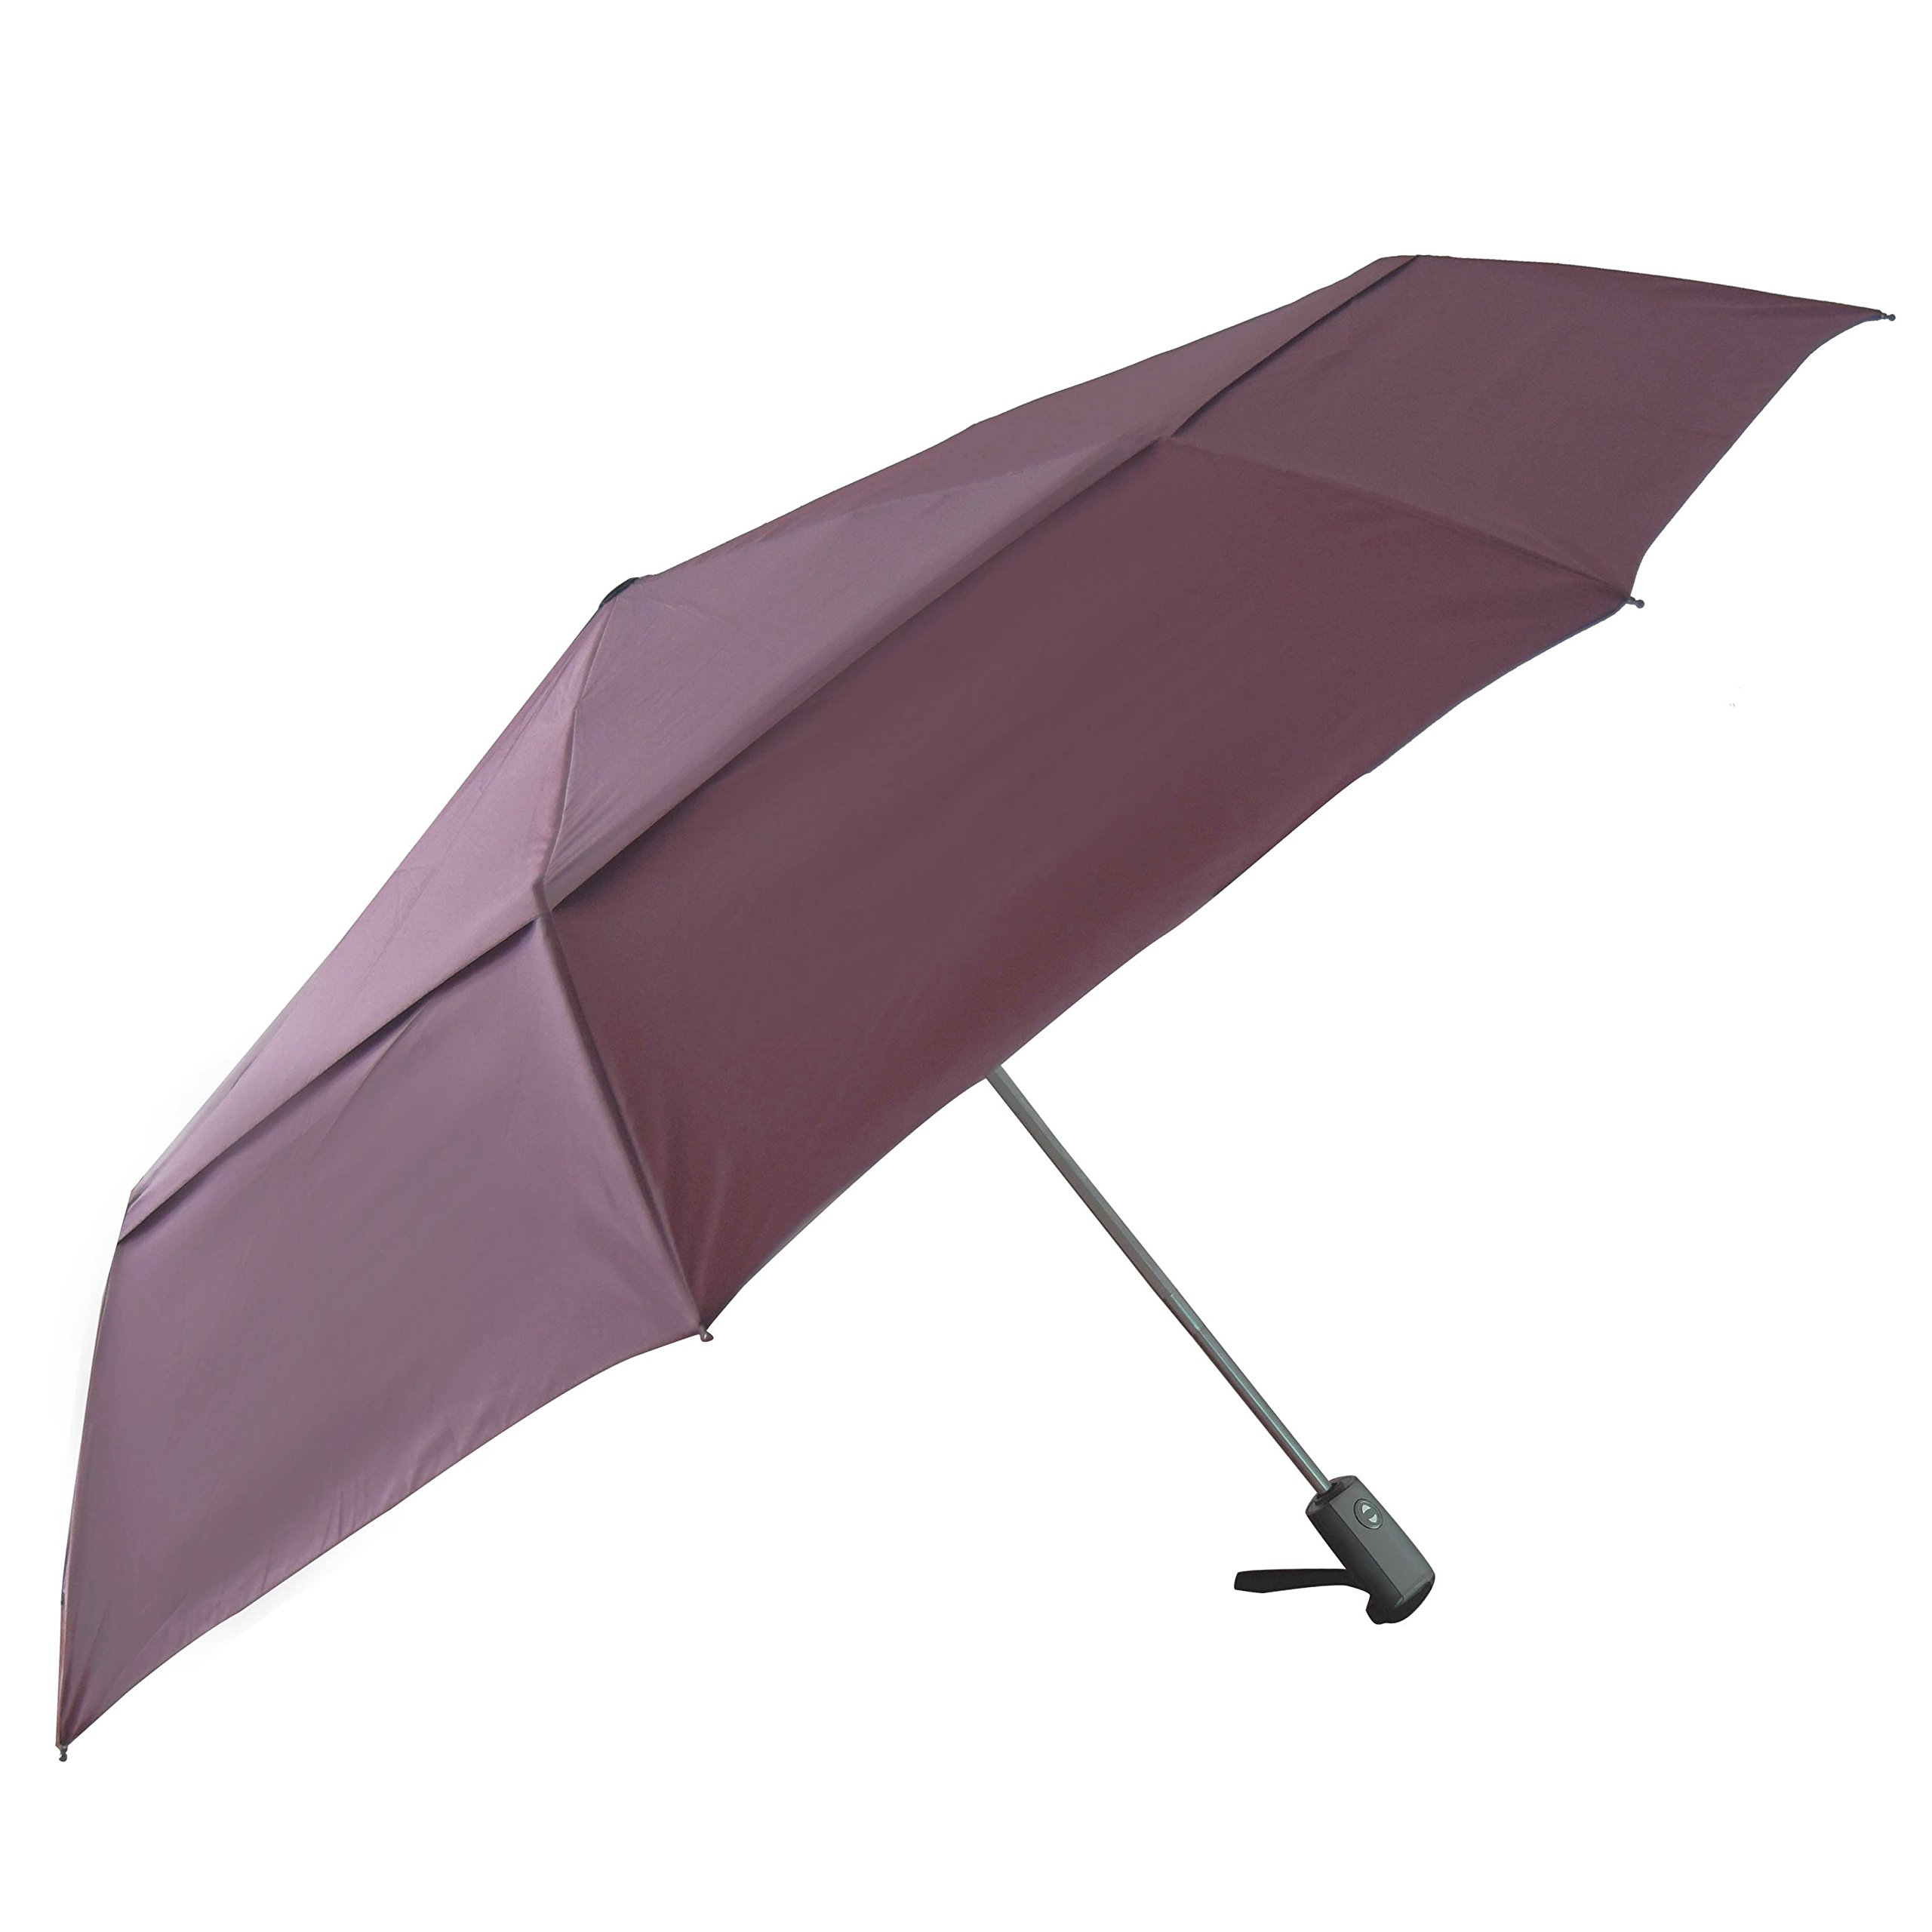 Automatic Open Golf Umbrella Compact & Lightweight Rain/Wind Resistant Double Canopy Vented Golf-sized Large Travel Umbrella with Small Folding Length